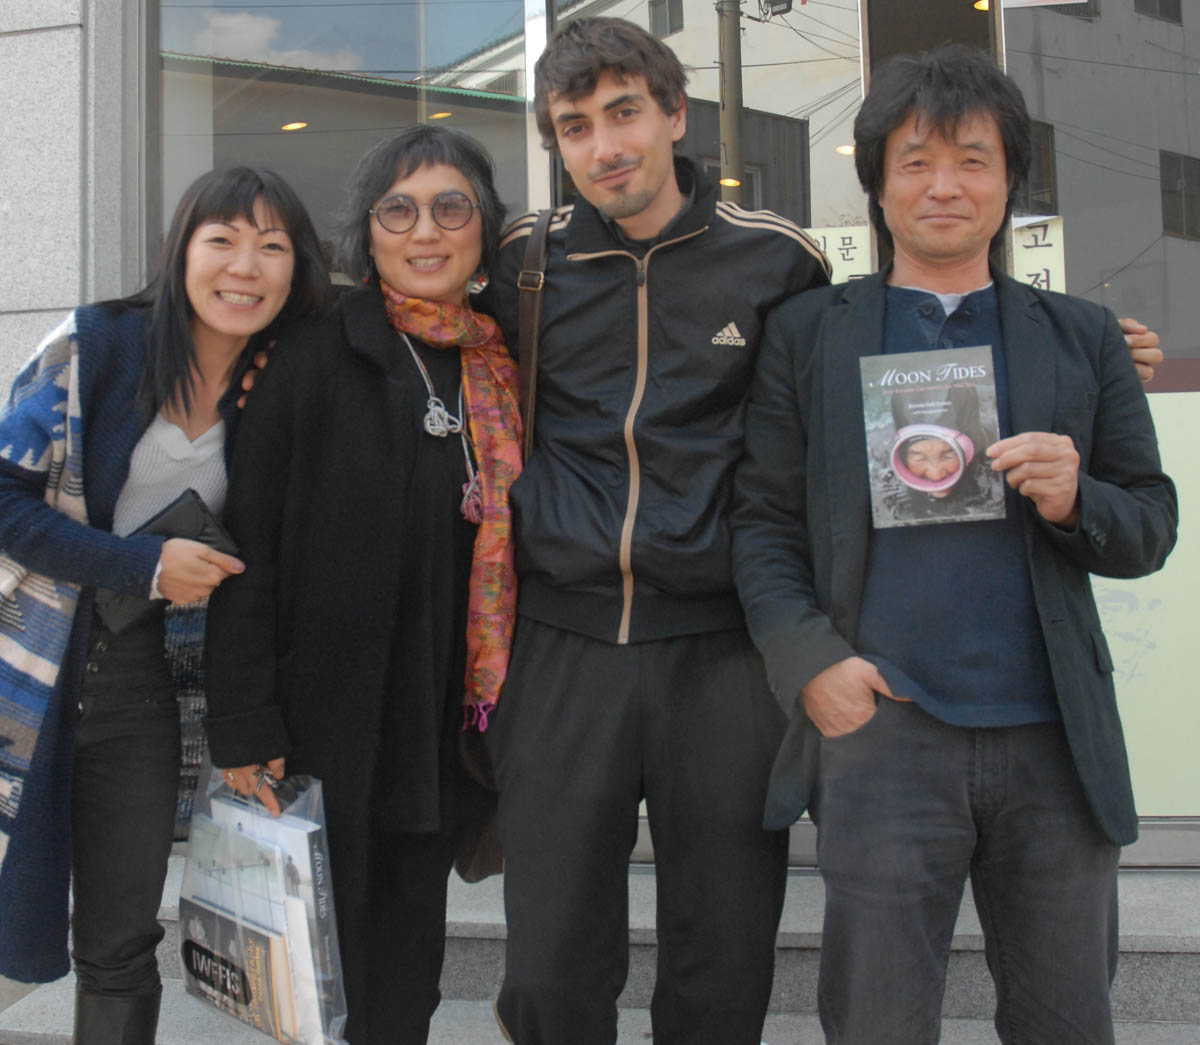 Left to right: filmmaker Jane Jin Kaisen, Ahn Hye-kyoung (Art Space C), filmmaker Guston Sondin-Kung and artist Koh Gil-chun